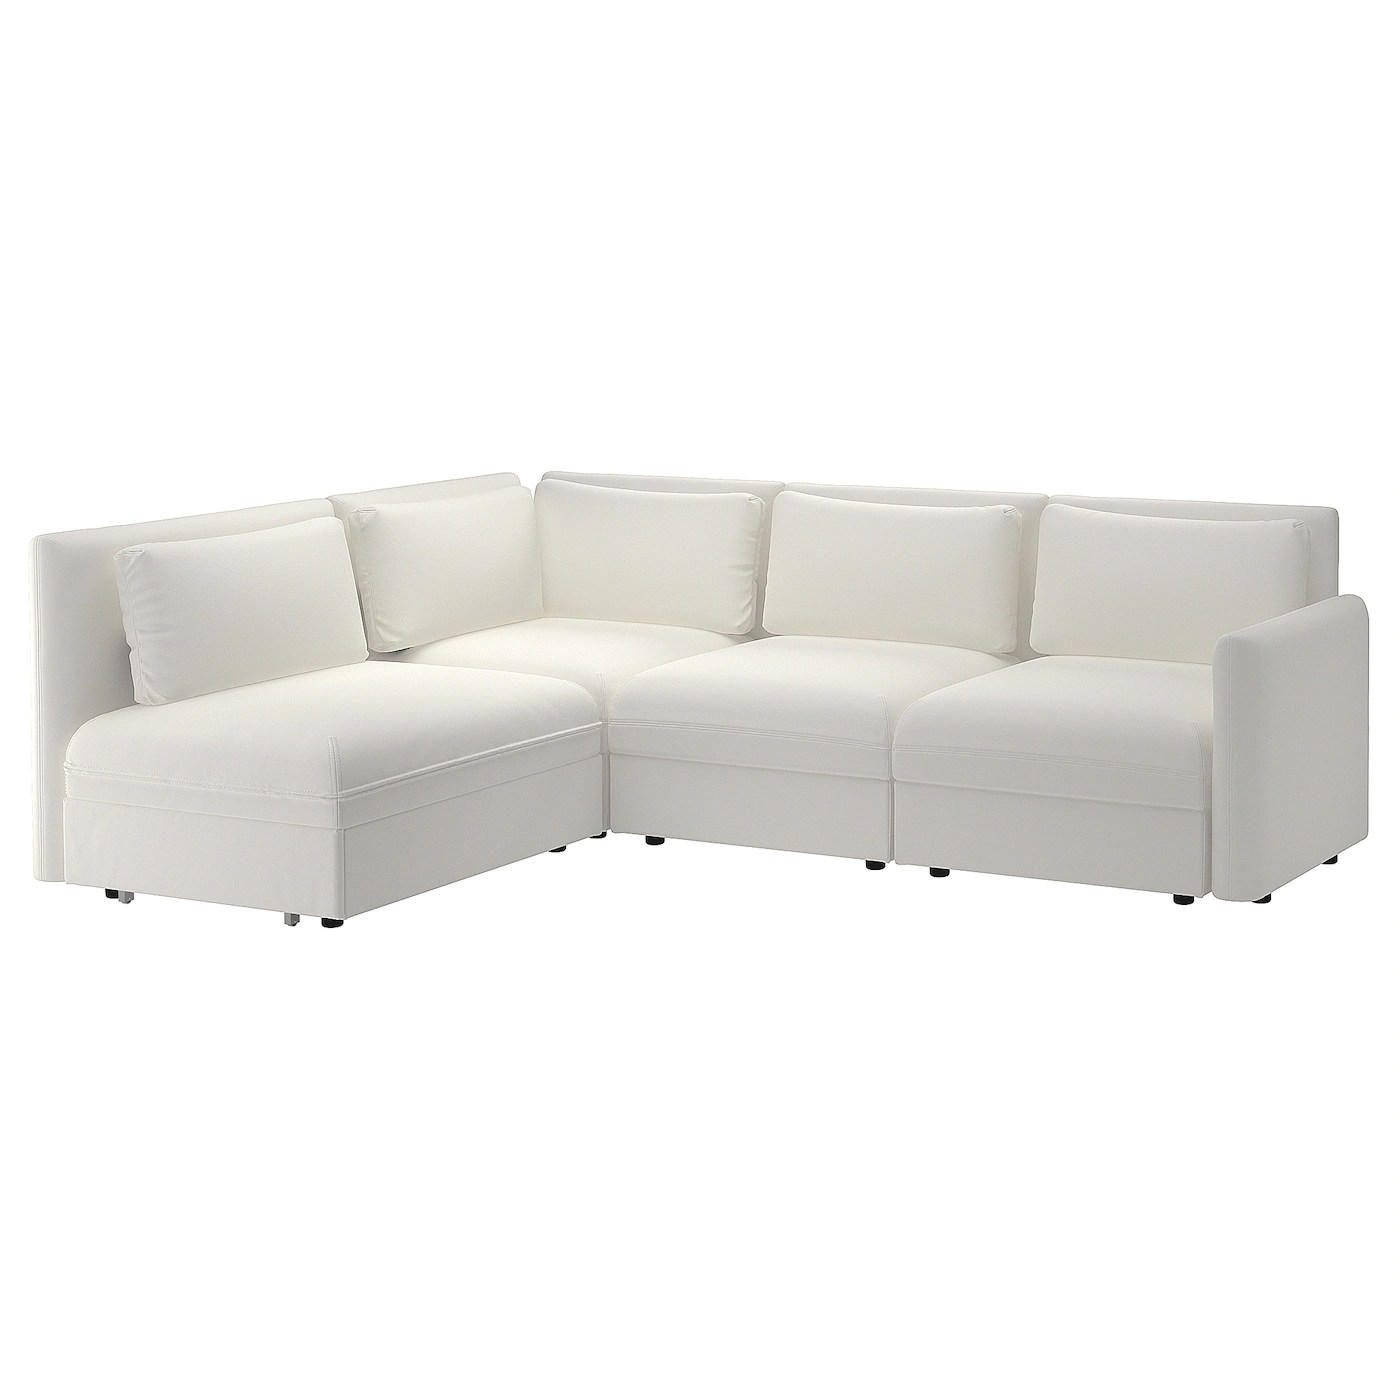 The Big Sofa London Sofa Beds Corner Sofa Beds Futons Ikea